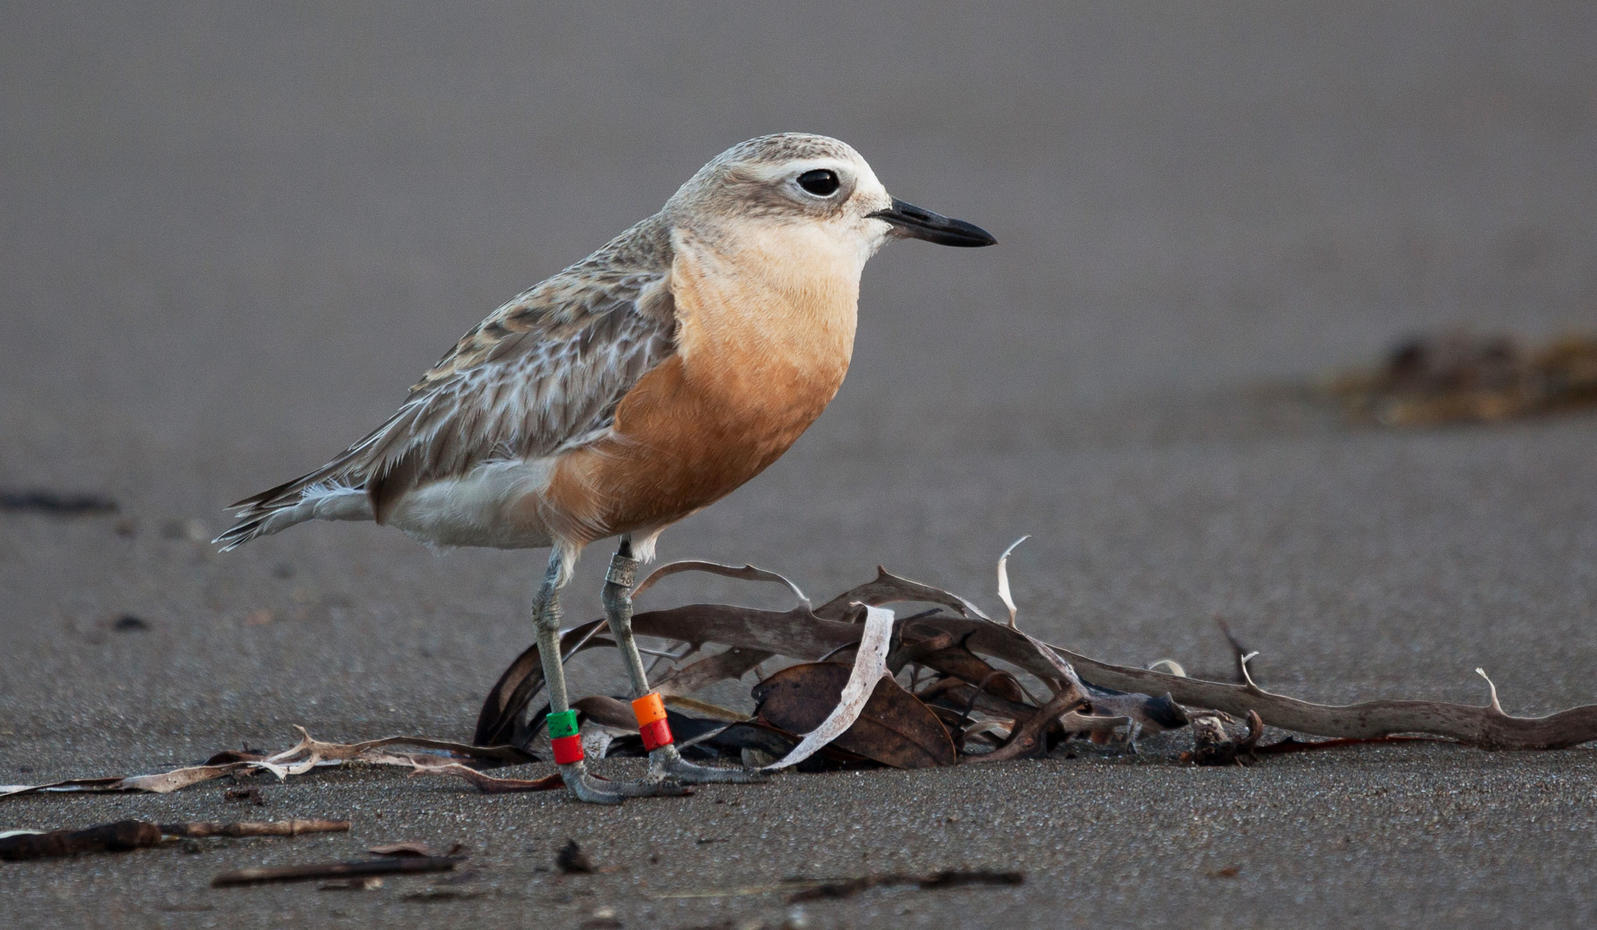 The New Zealand dotterel nests on the beach where Taylor Swift's latest music video was filmed. russellstreet/Flickr Creative Commons